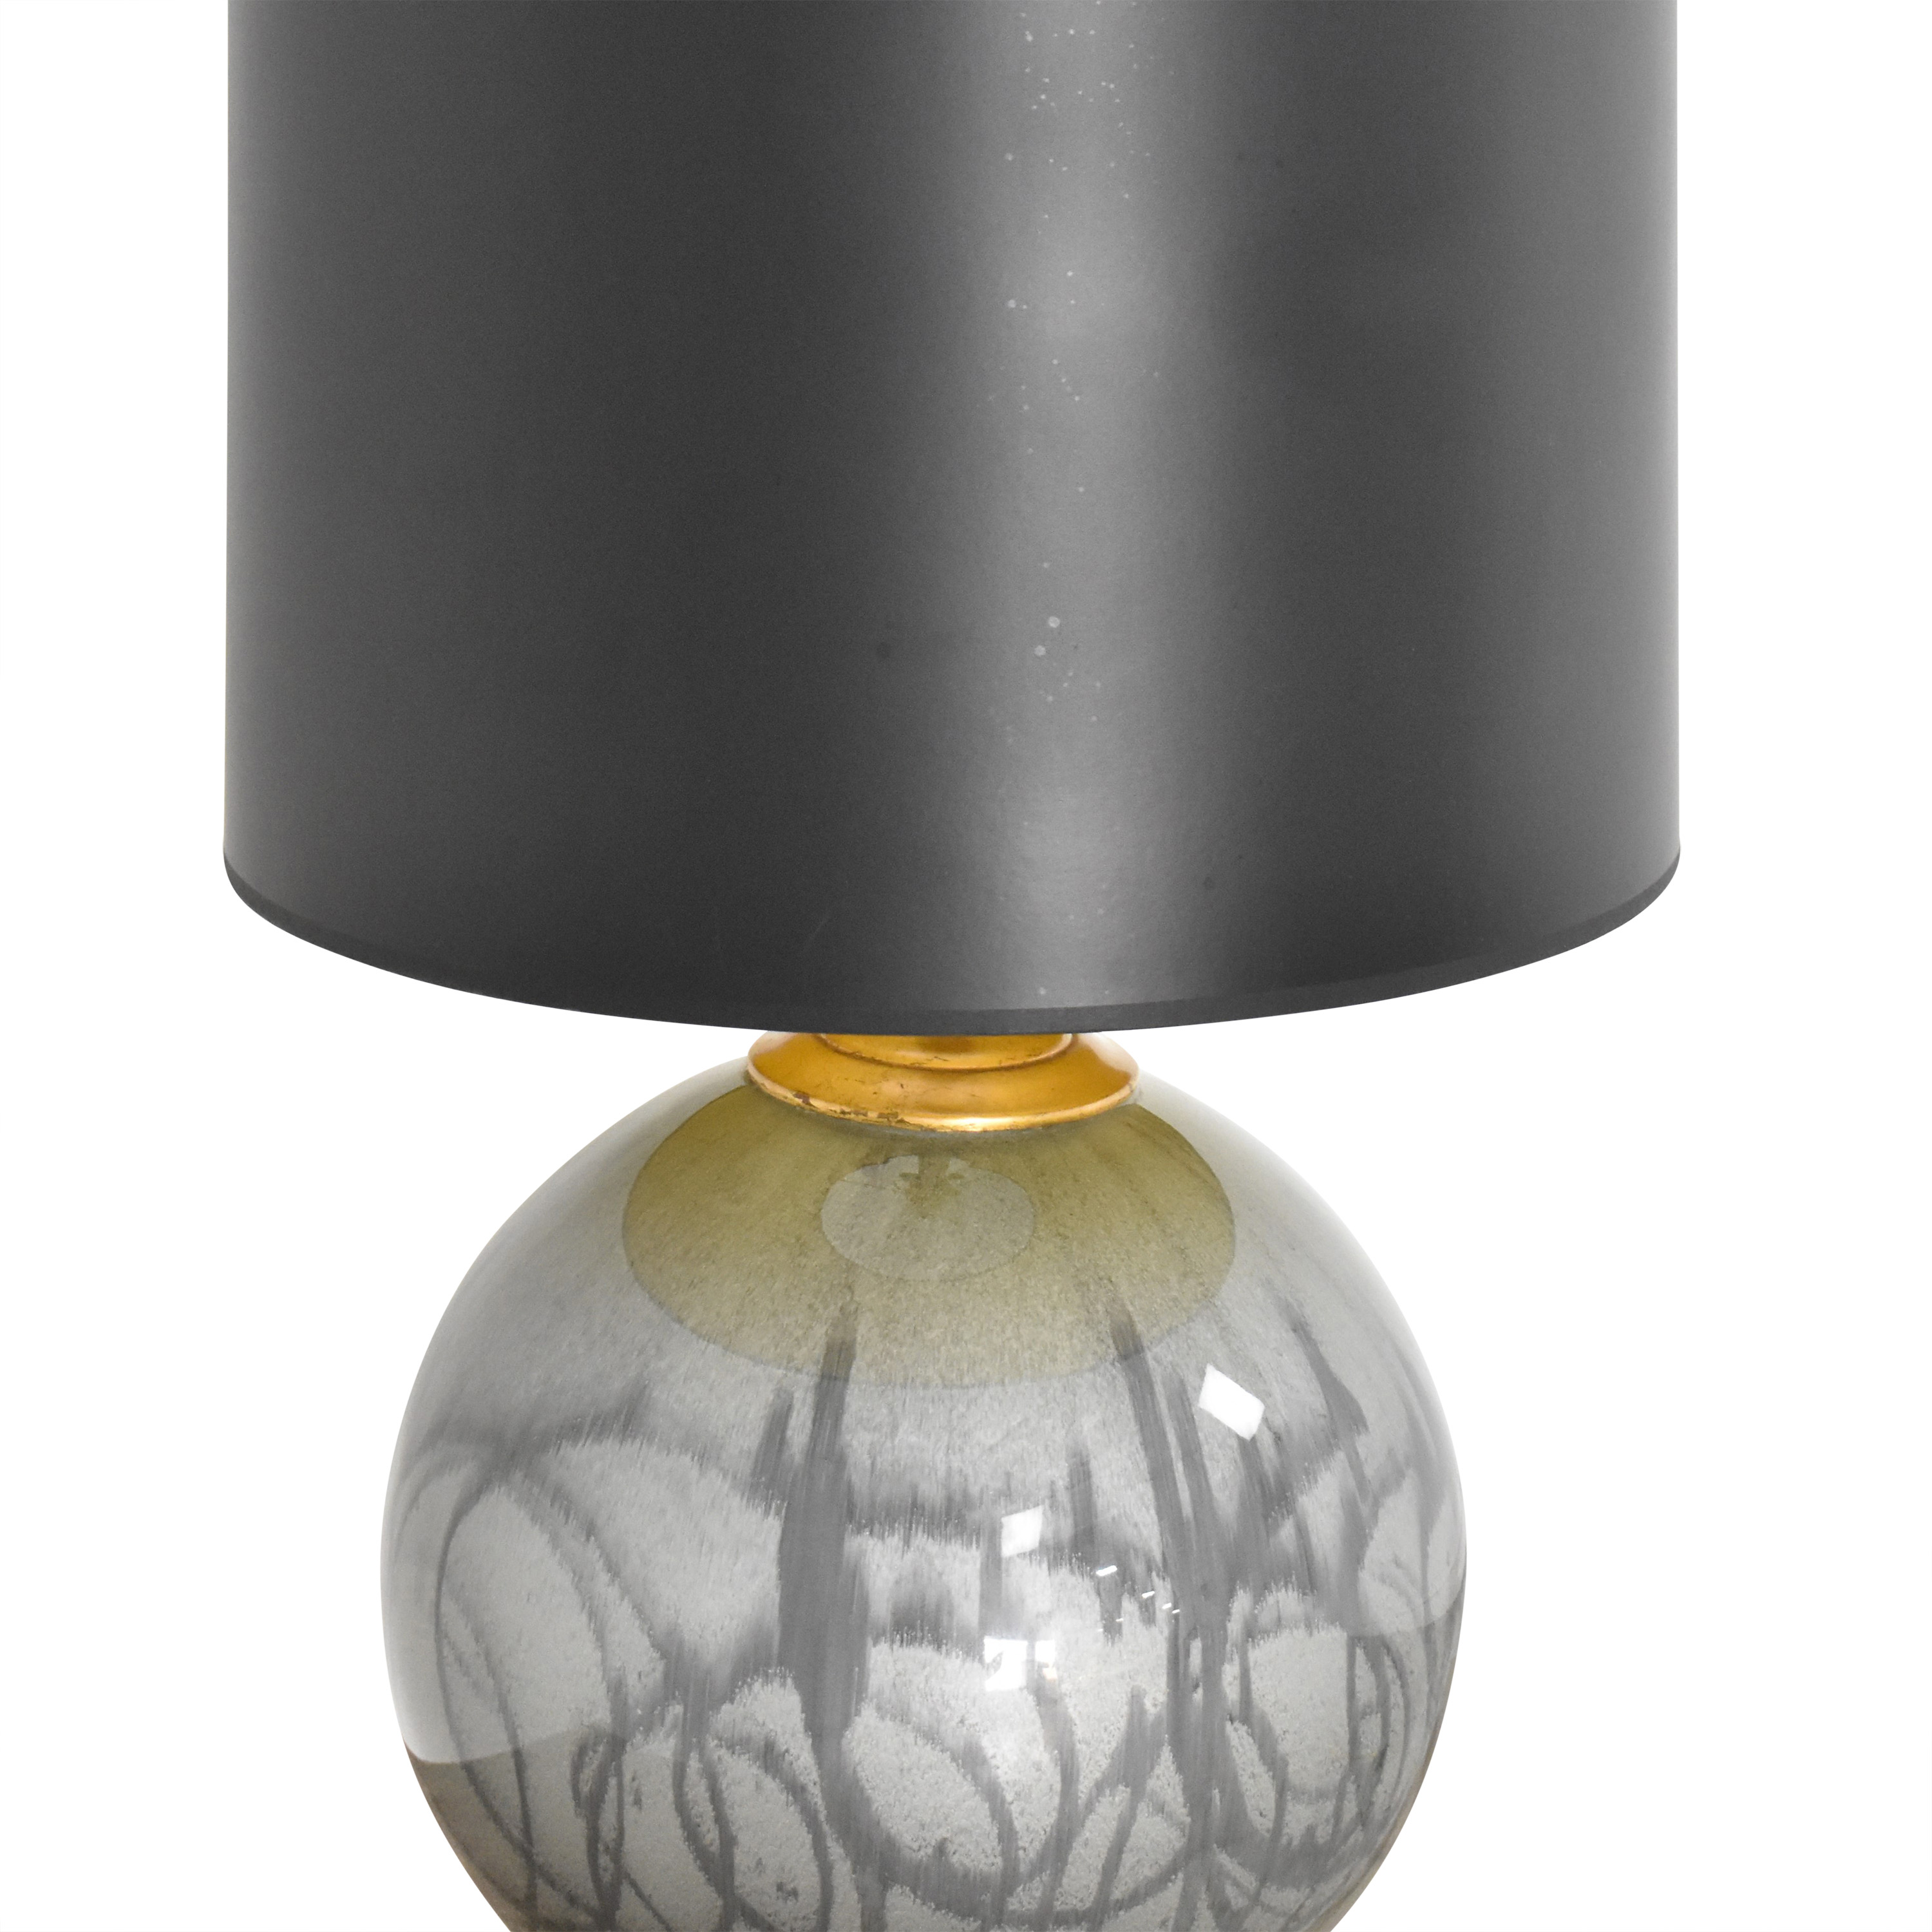 Round Base Table Lamp sale